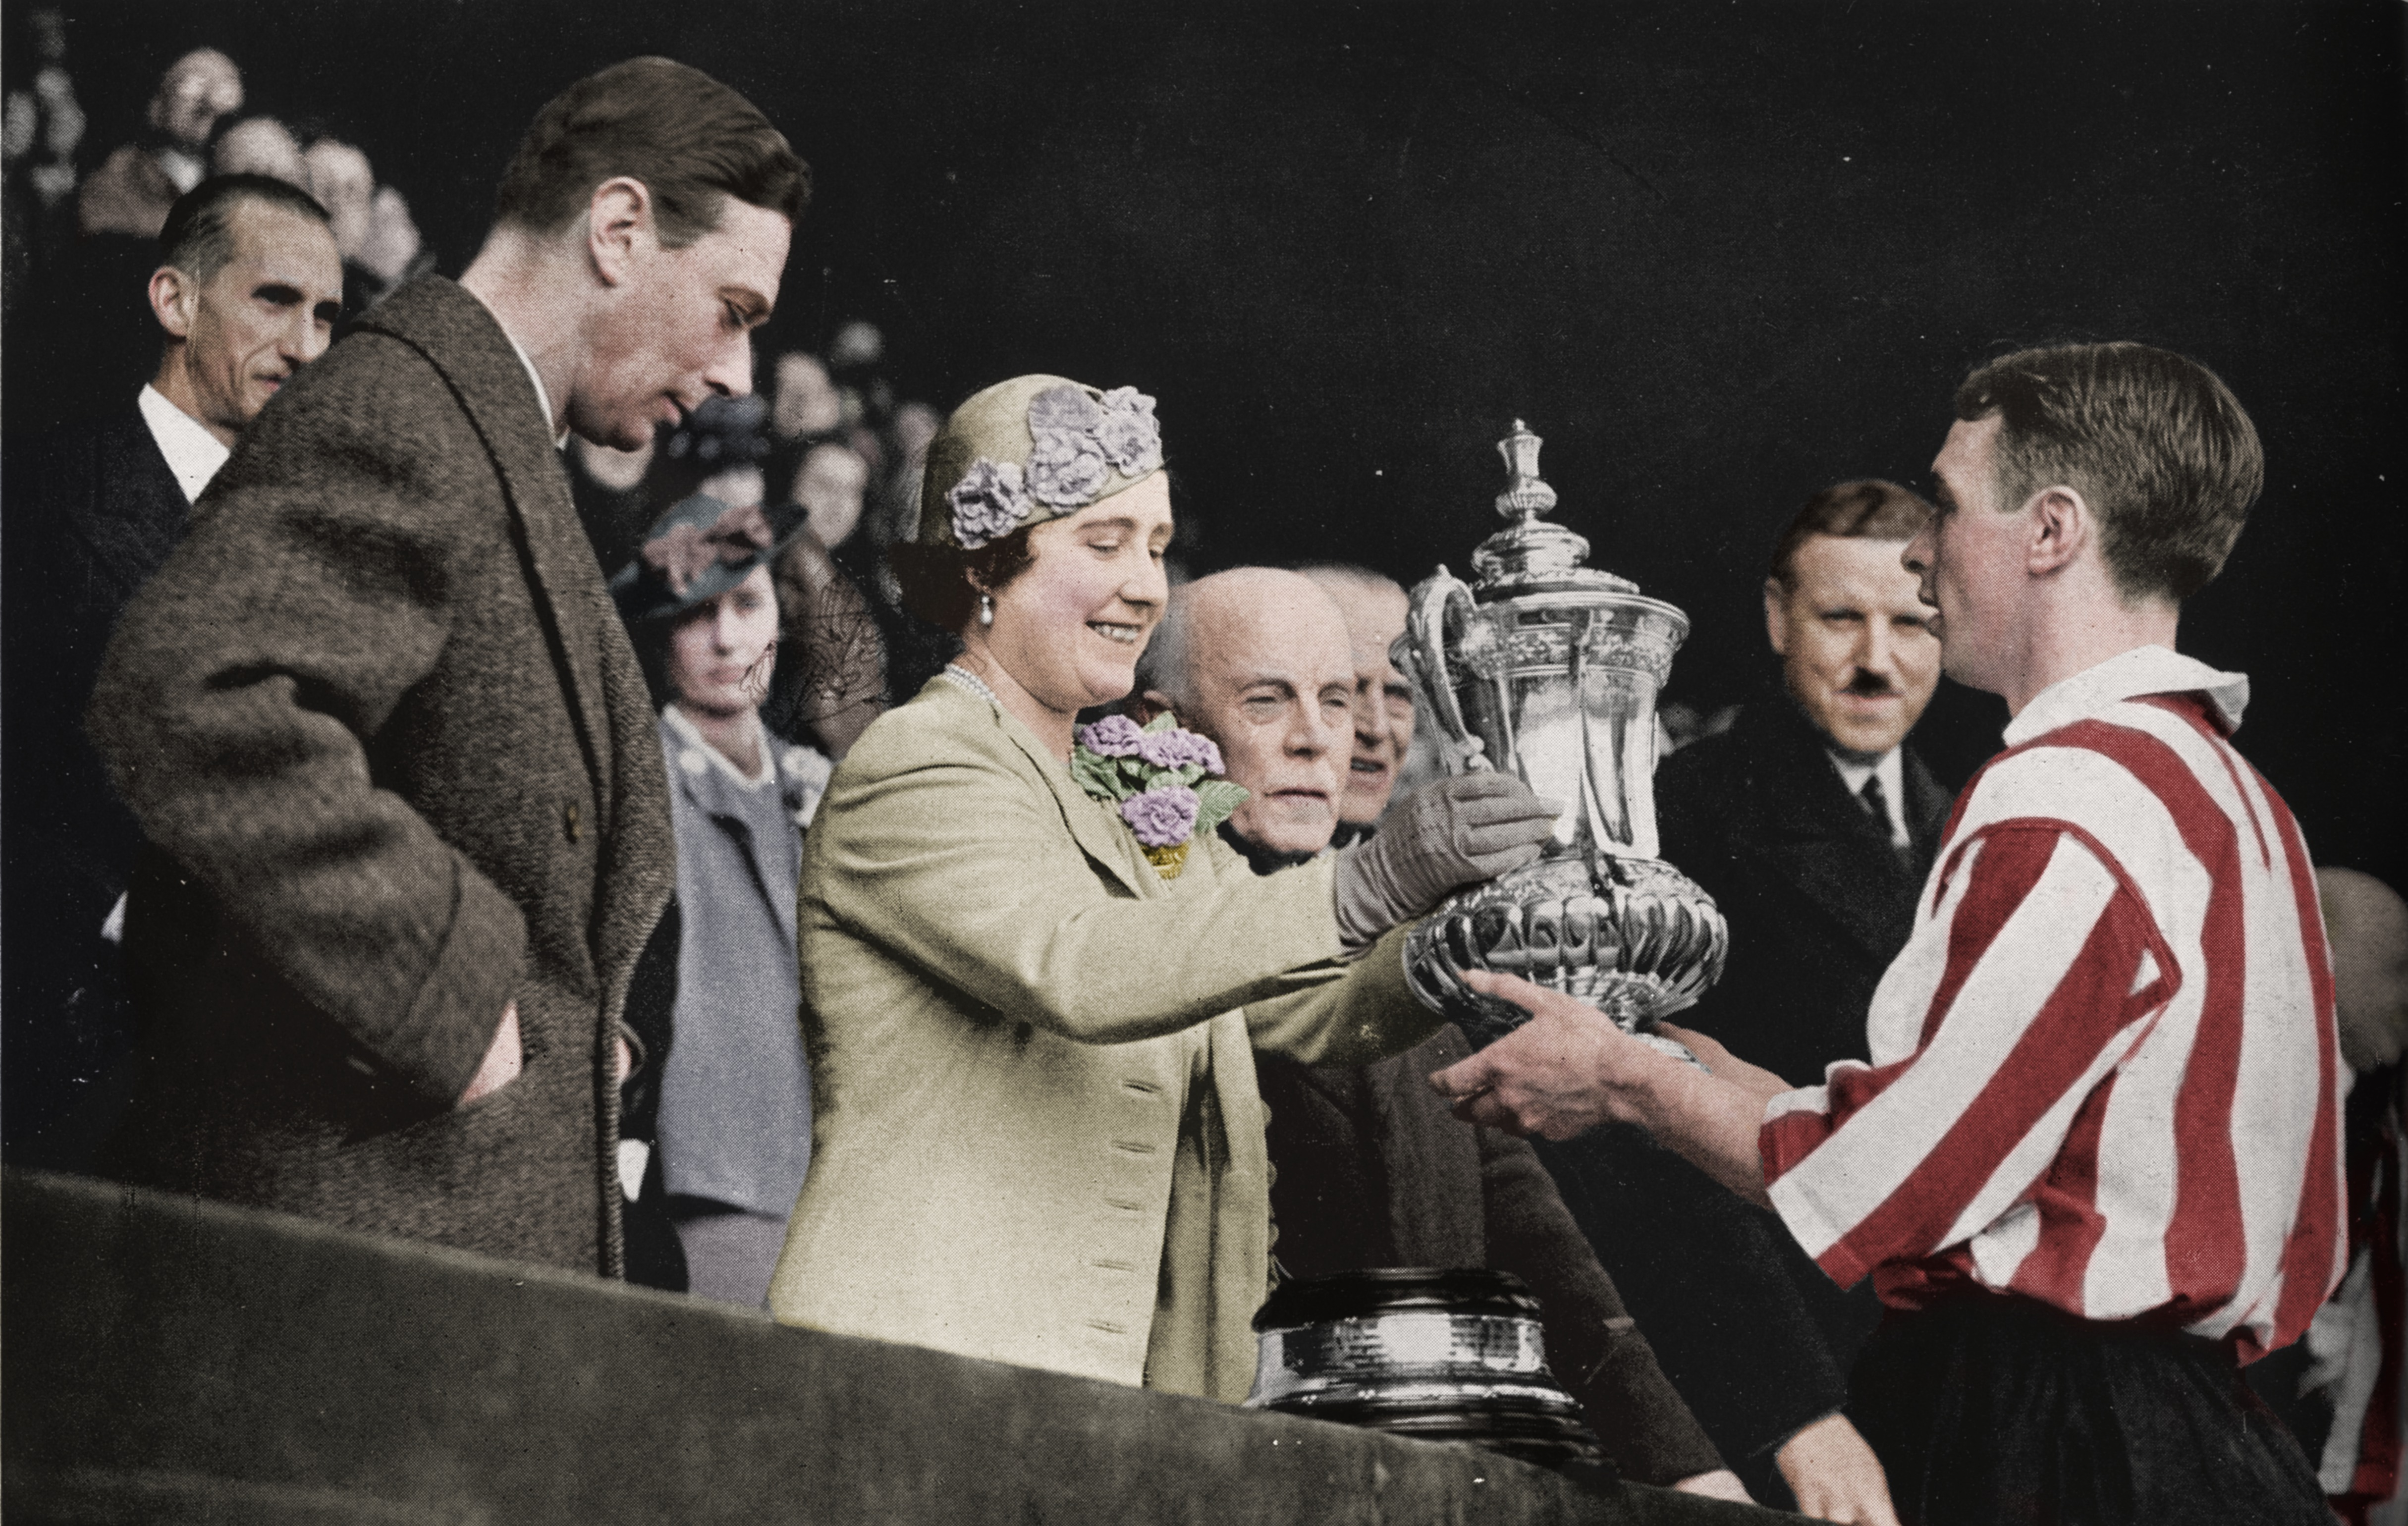 The Queen Presents The Cup